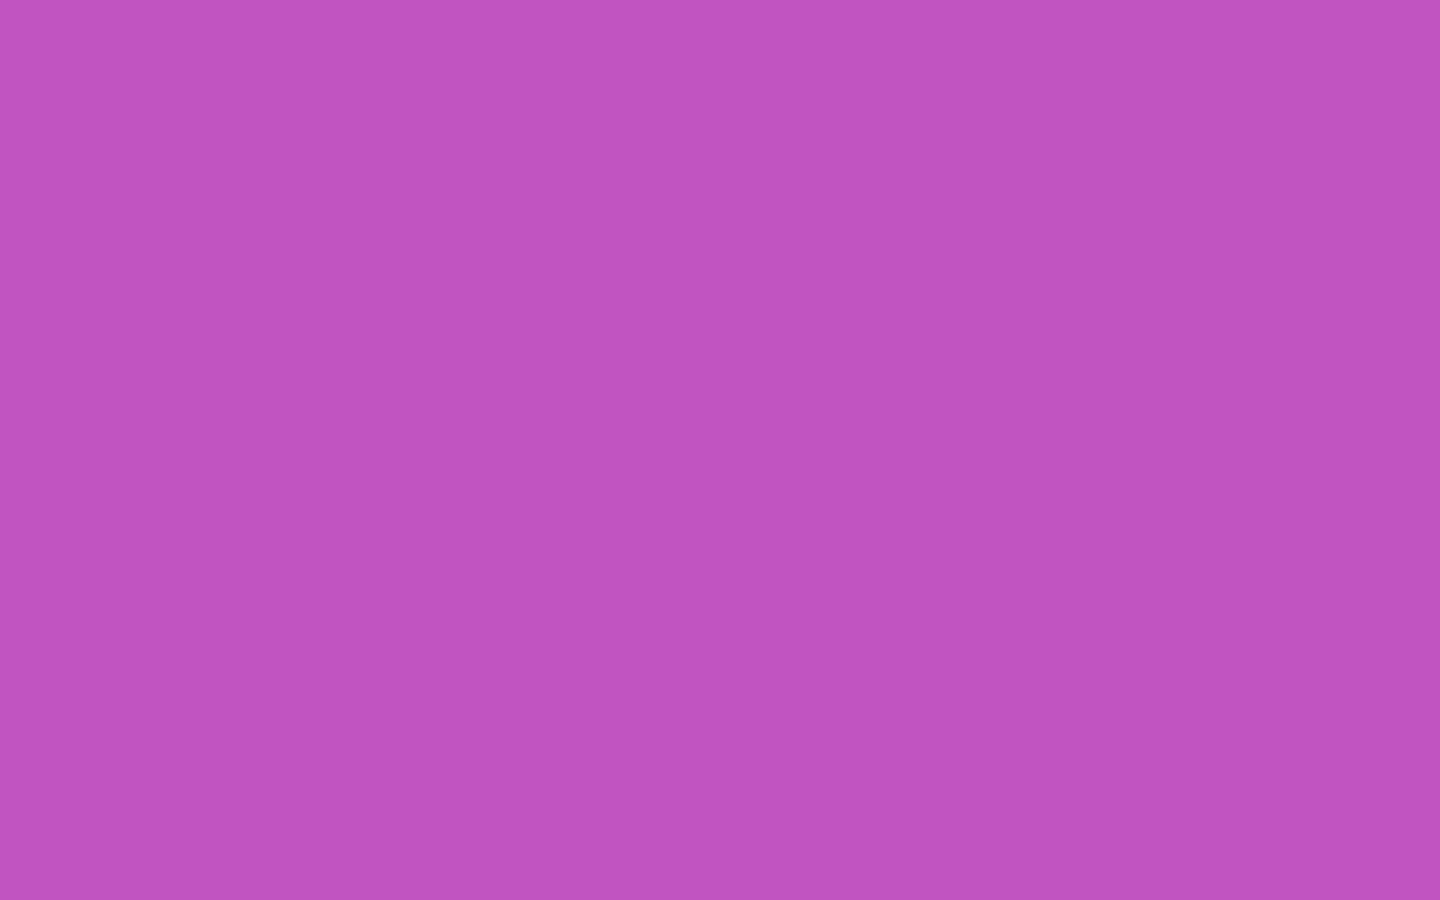 1440x900 Fuchsia Crayola Solid Color Background